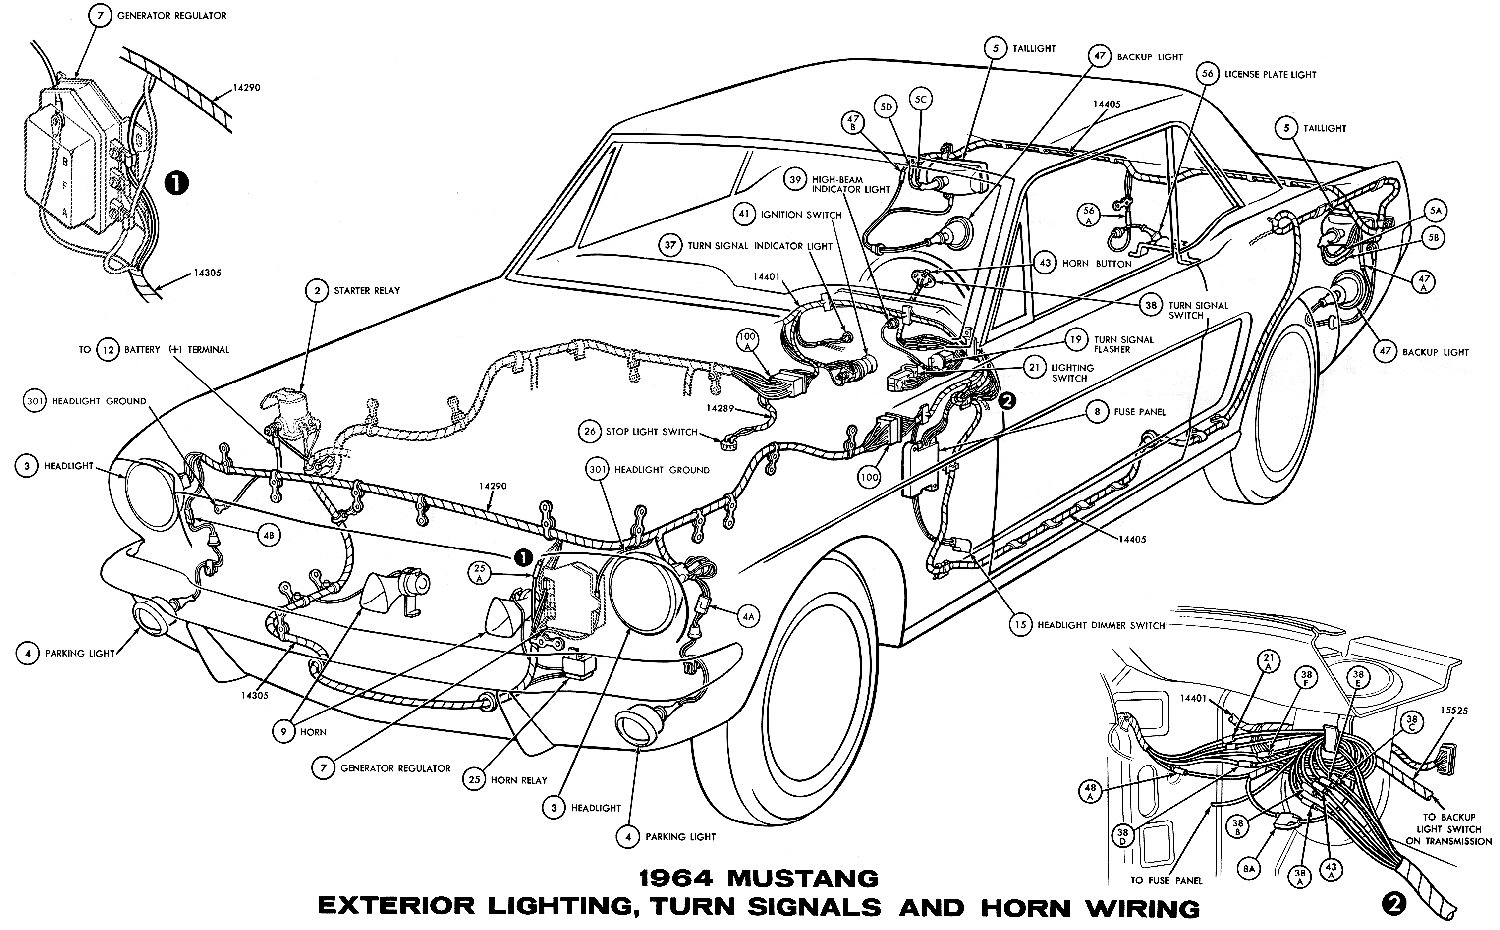 1964 Mustang Wiring Diagrams Average Joe Restoration 1956 Dodge Truck Diagram Sm1964h